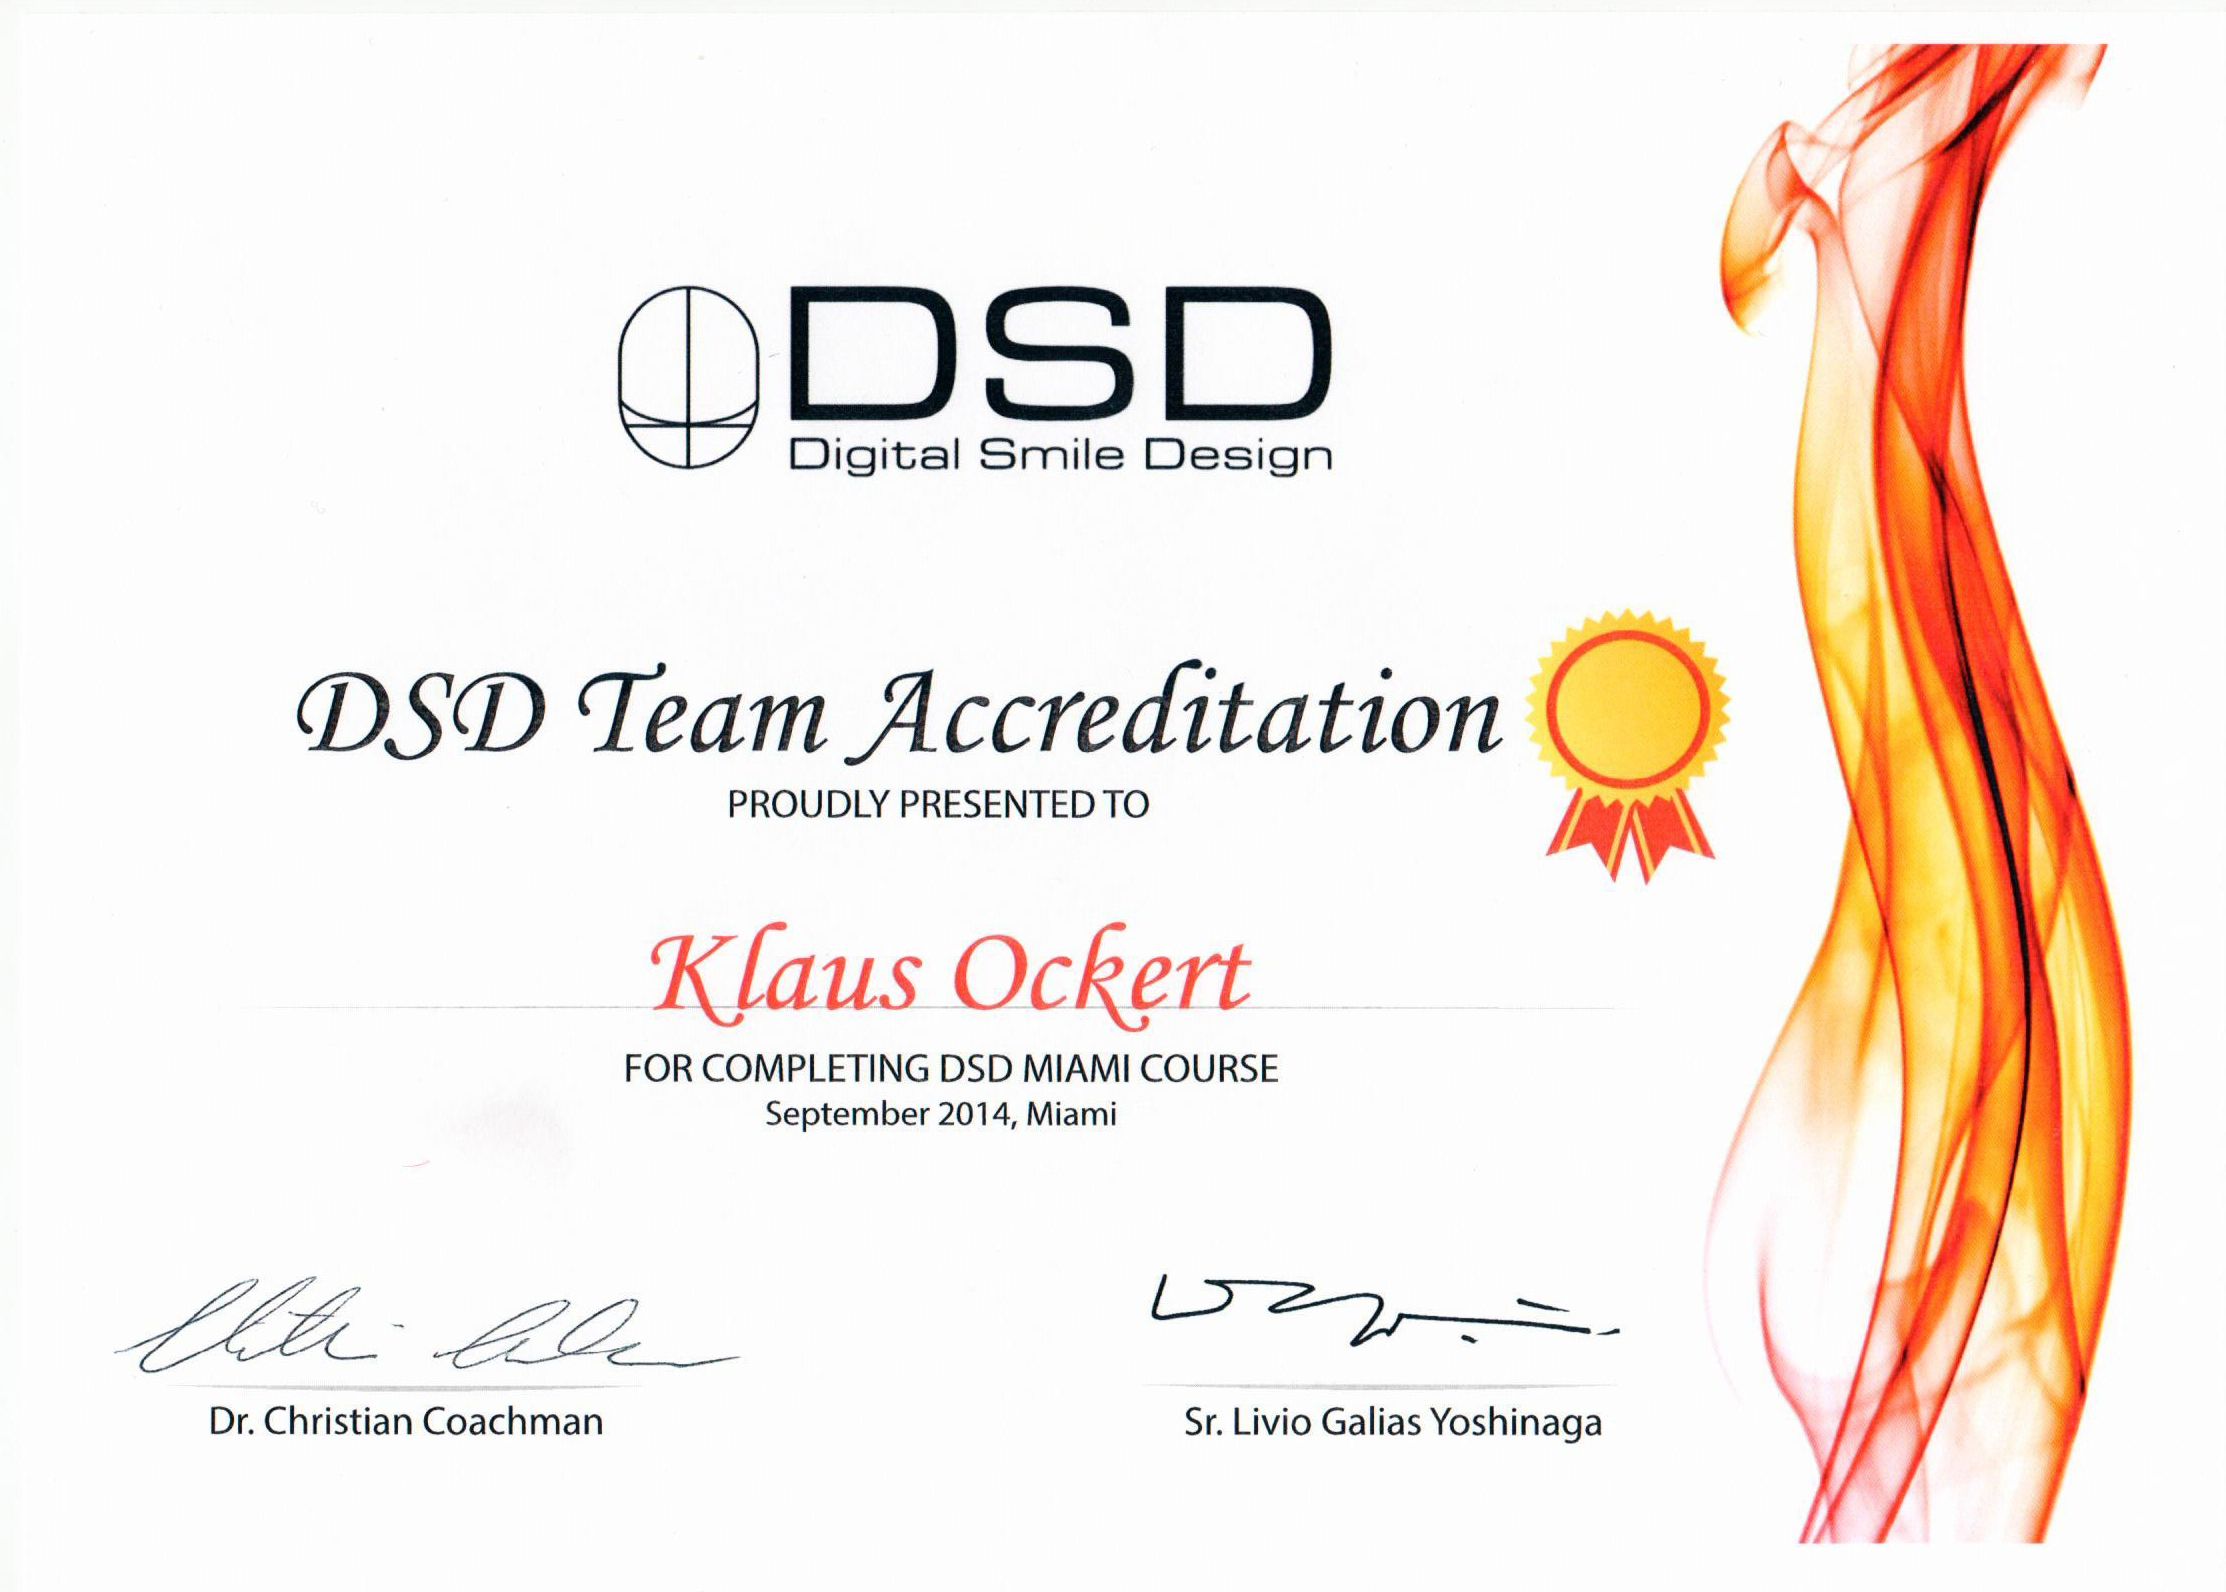 Digital Smile Design - Accreditation